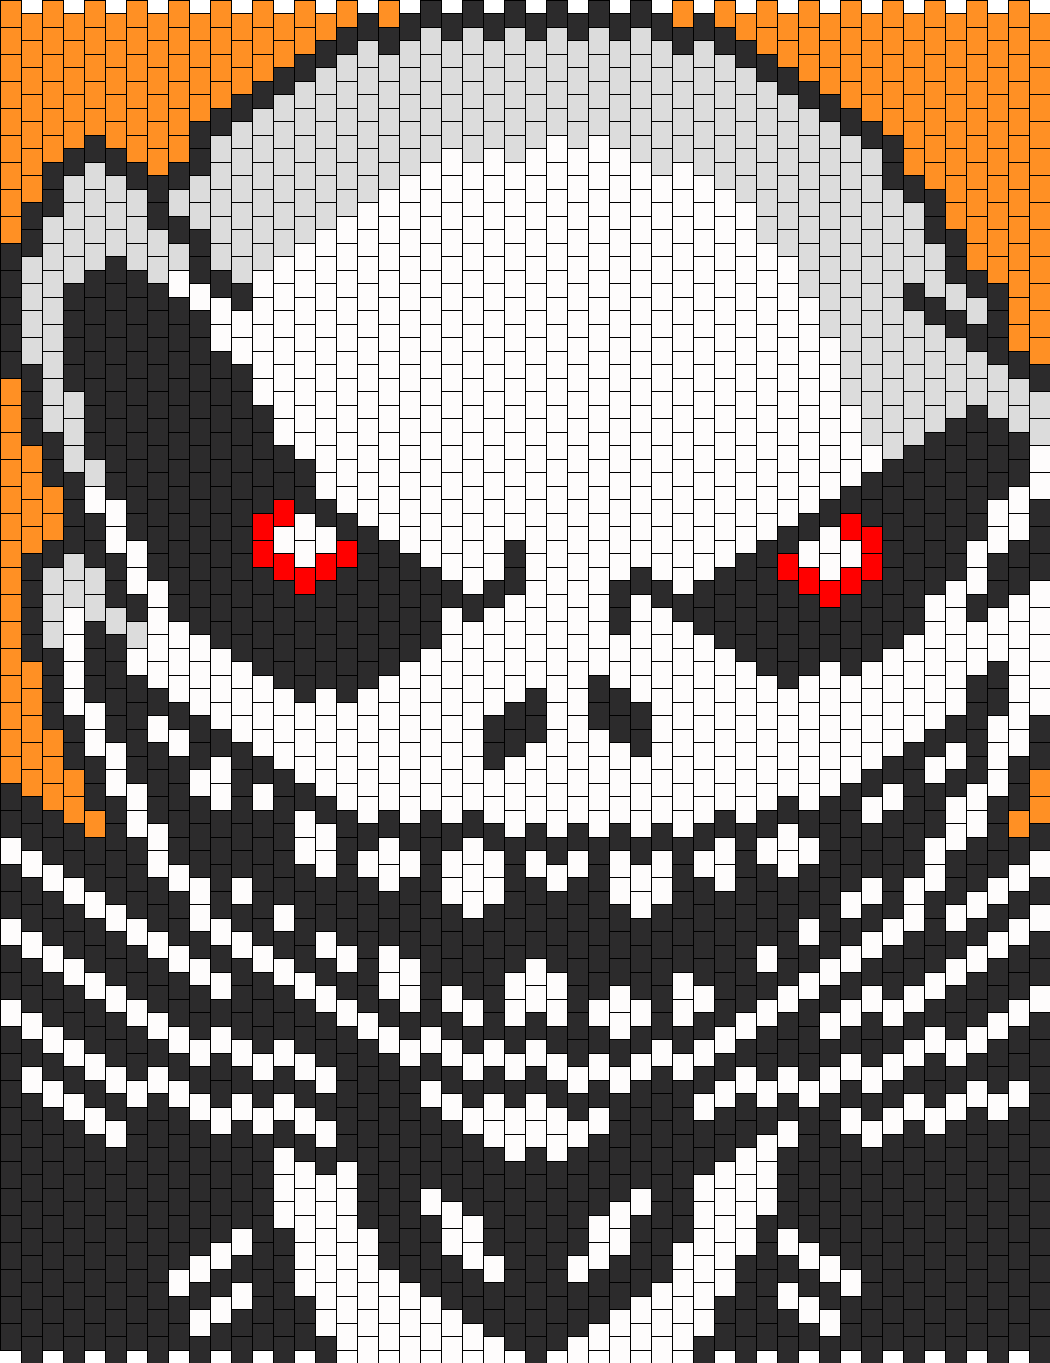 Evil Jack Skellington From The Nightmare Before Christmas